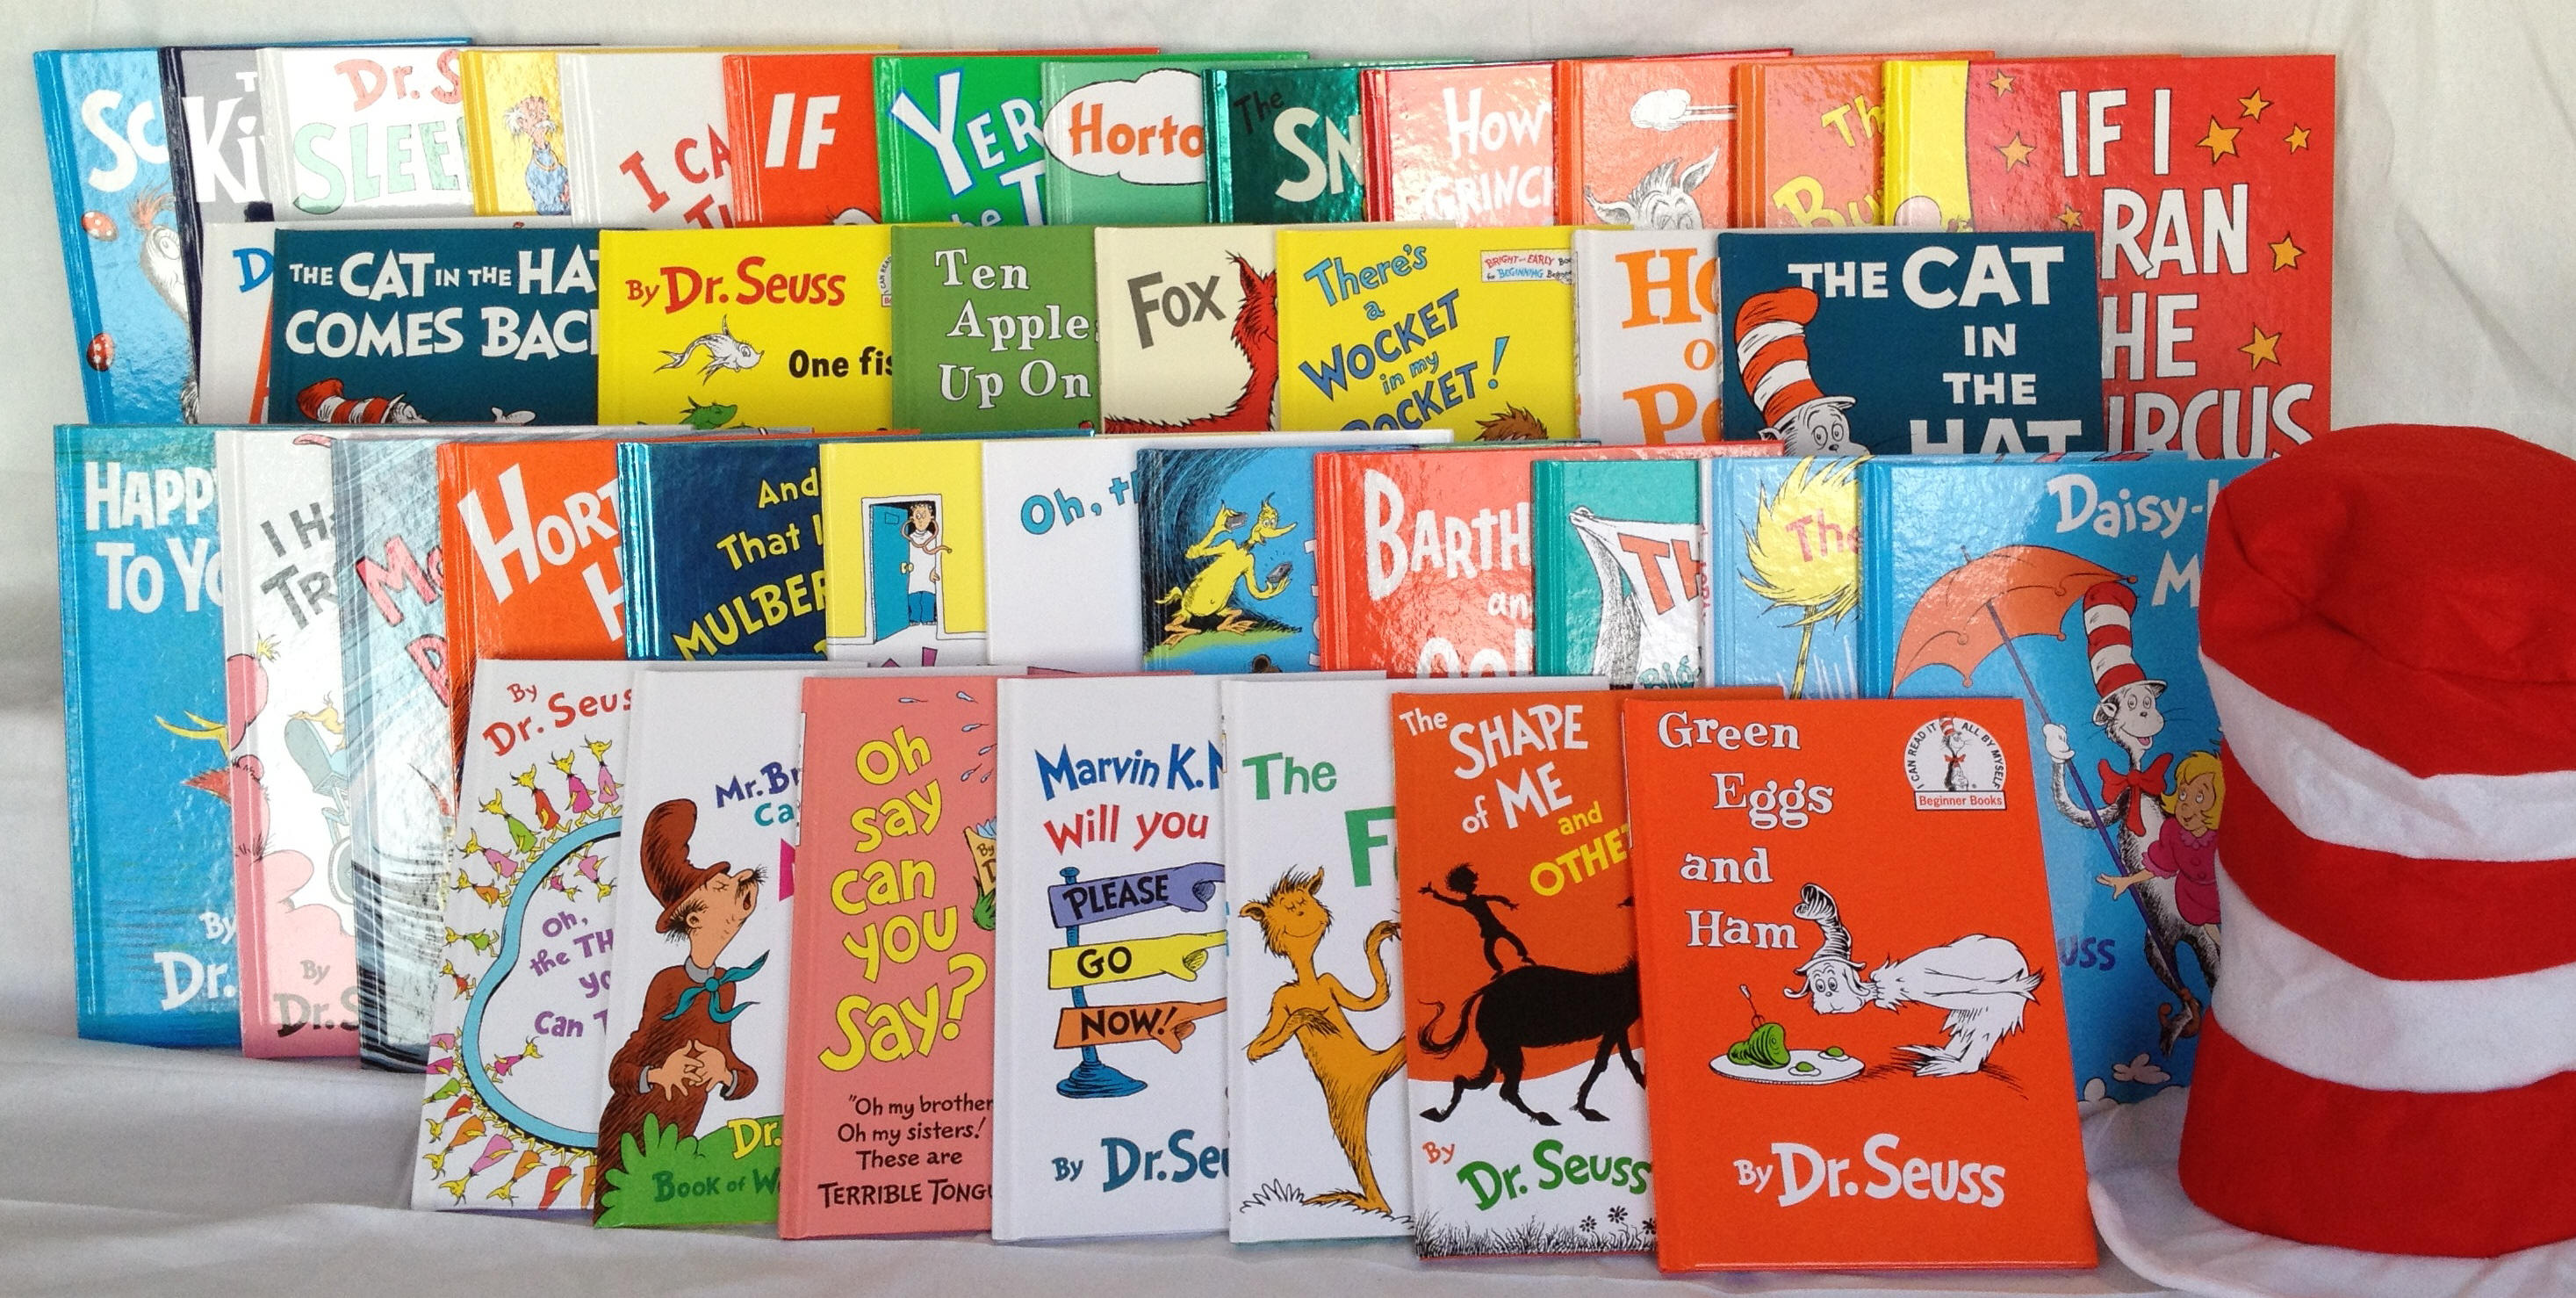 the life and works of the childrens book author dr seuss As the official state children's author and book, if i ran the zoo dr seuss's works provided life magazine ran an article on children having.